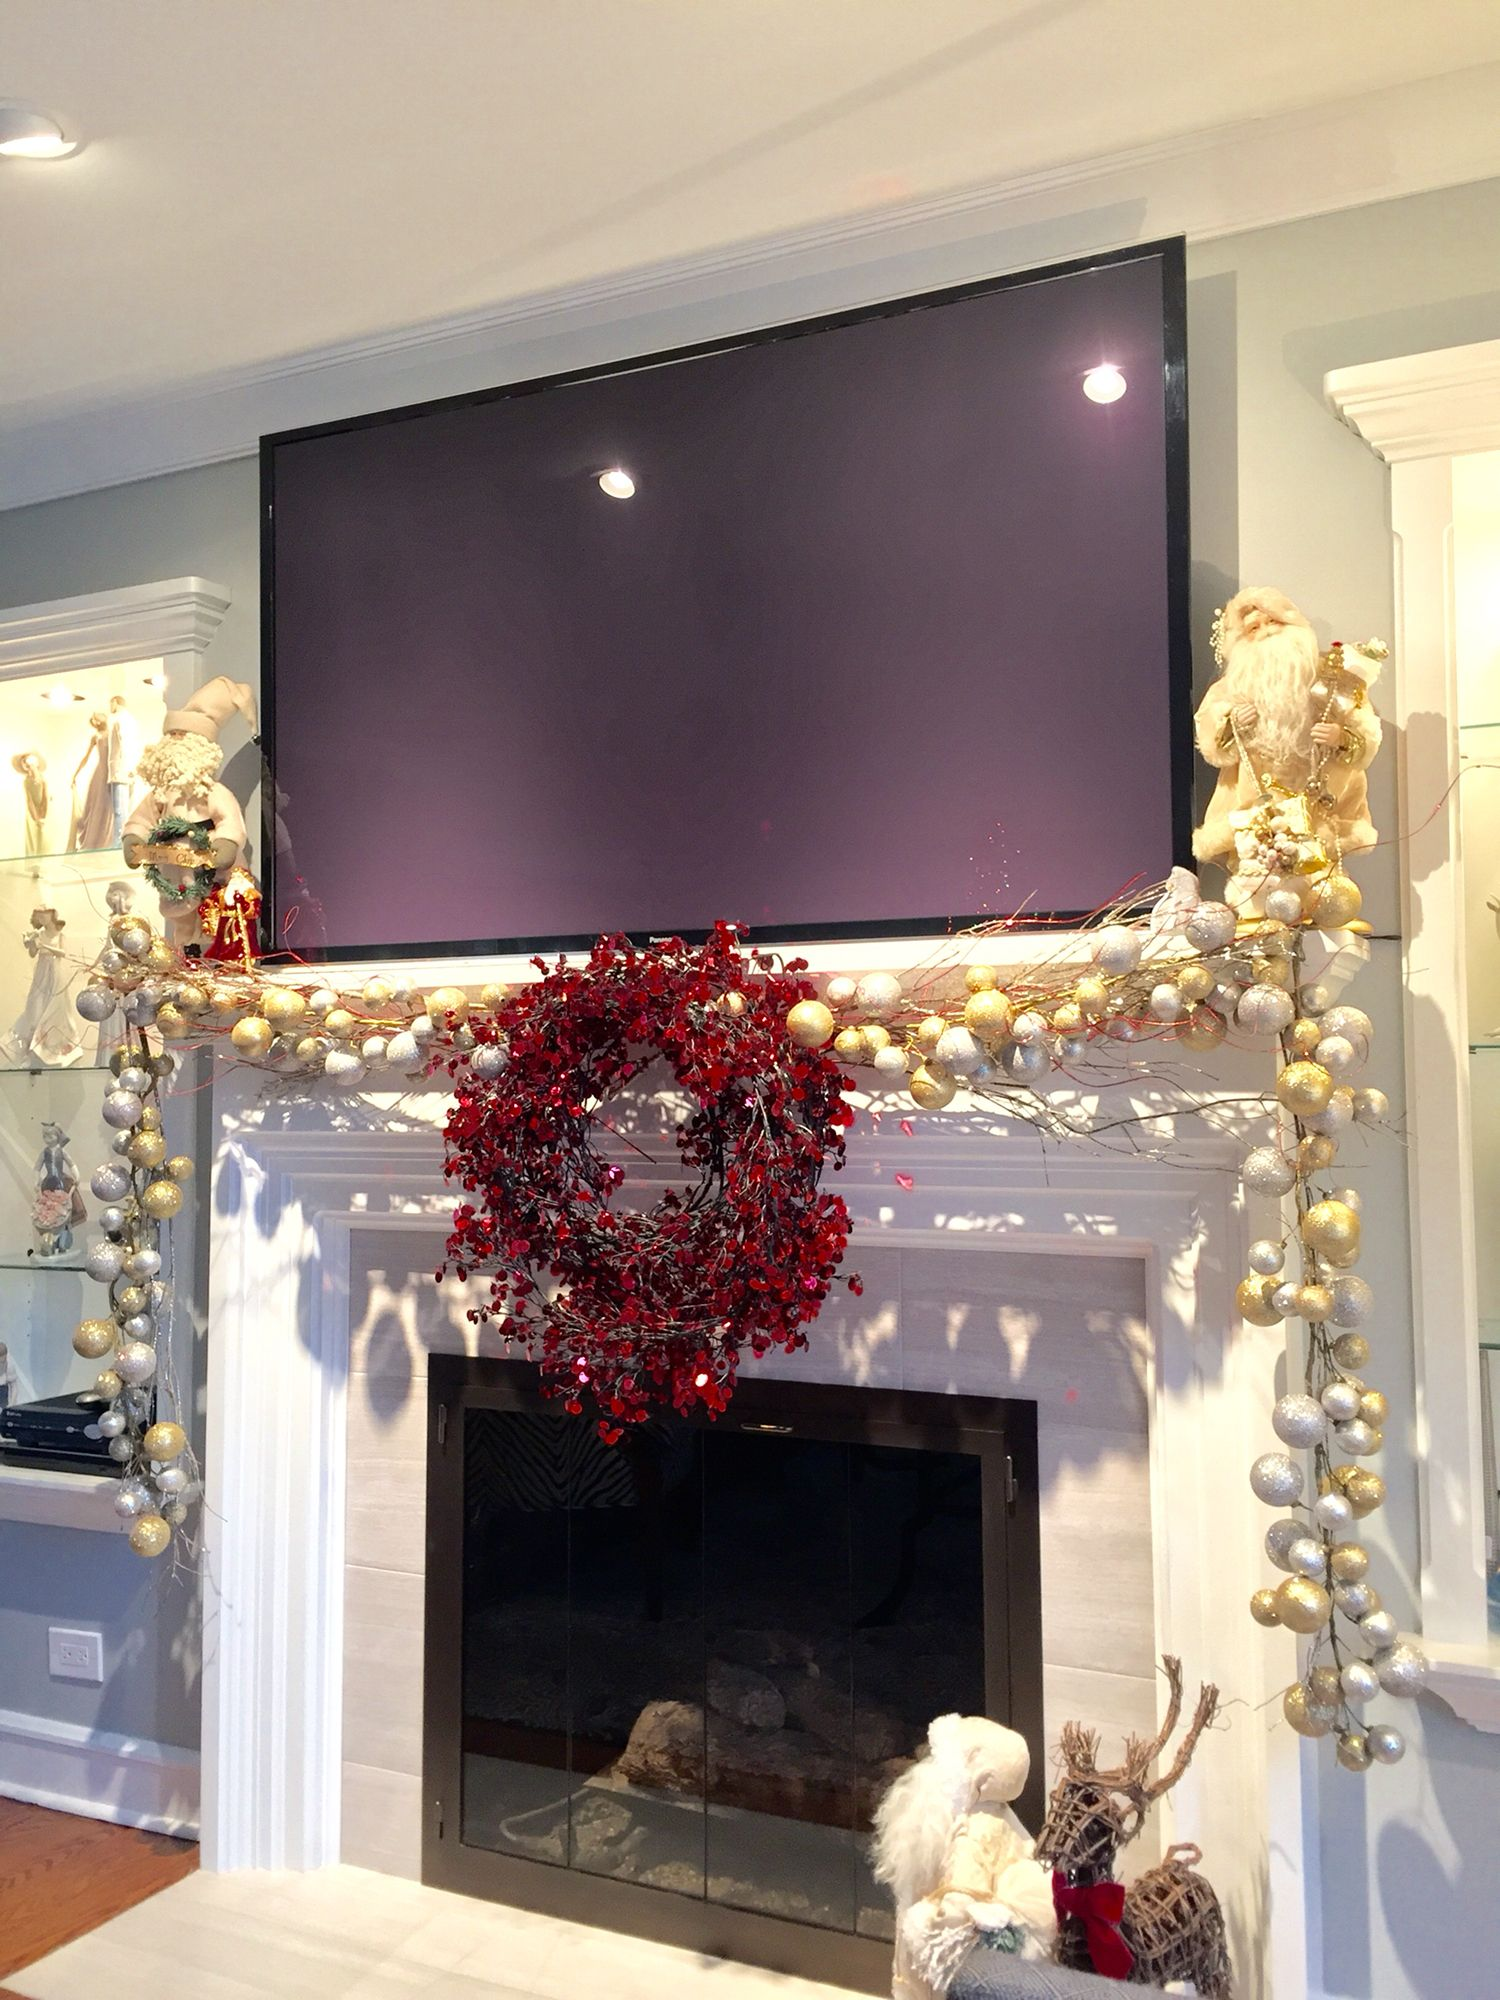 Mantle Decoration For Christmas With A Big Screen Tv Christmas Mantle Decor Christmas Fireplace Decor Christmas Fireplace